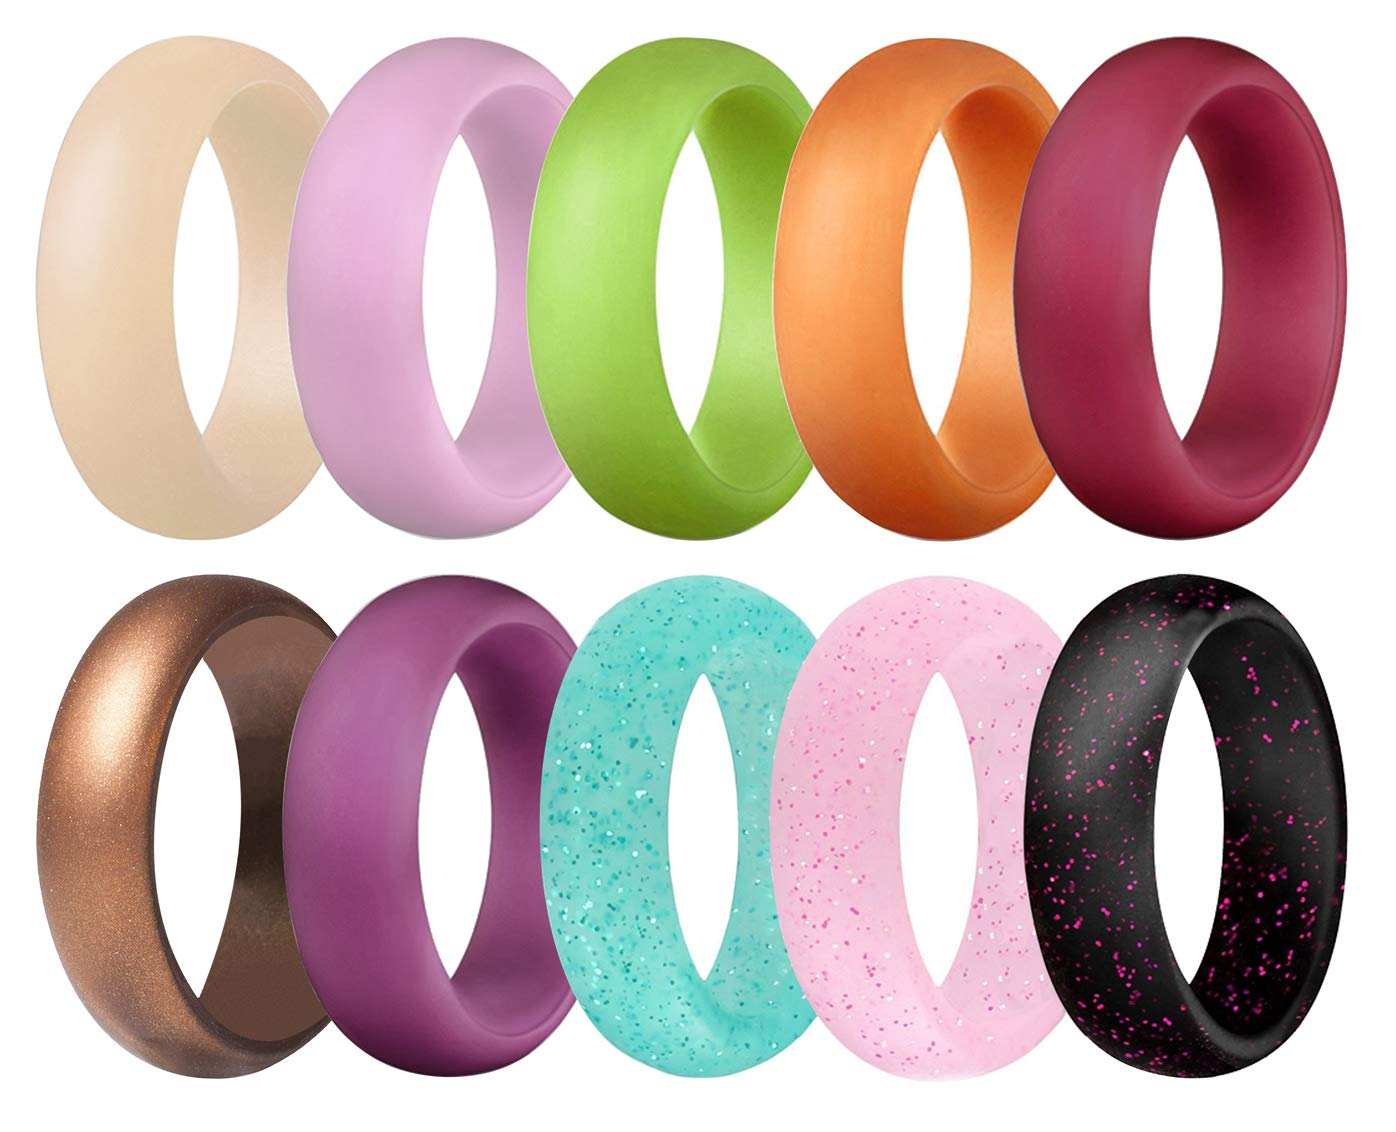 Founvar Silicone Wedding Ring for Women 10 Pack 5.5mm Wide /& Glitter Womens Rubber Wedding Ring Bands Size 5 6 7 8 9